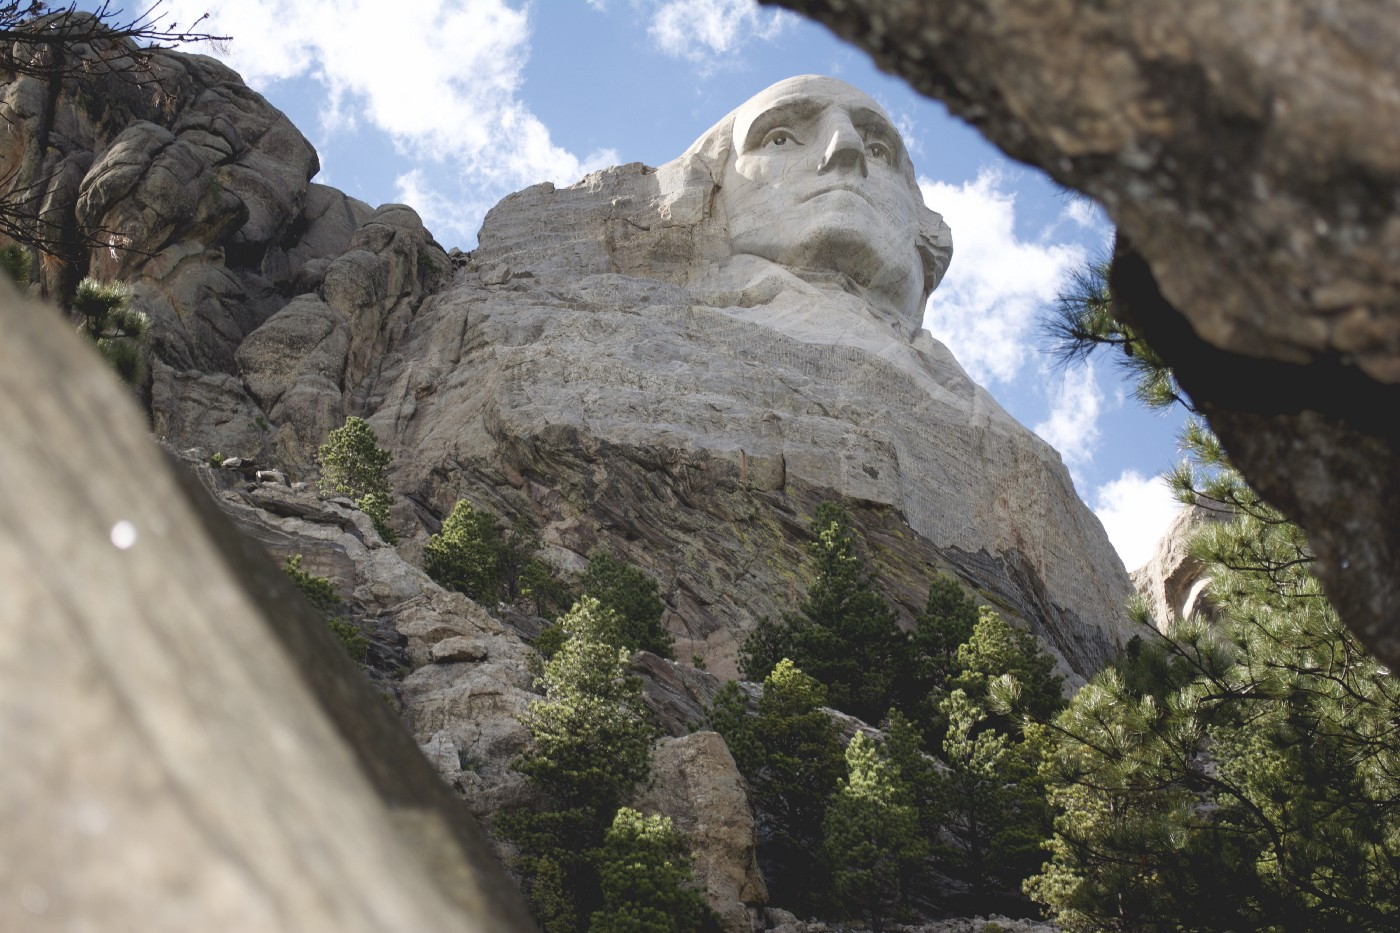 This is a photo of George Washington on Mt. Rushmore.